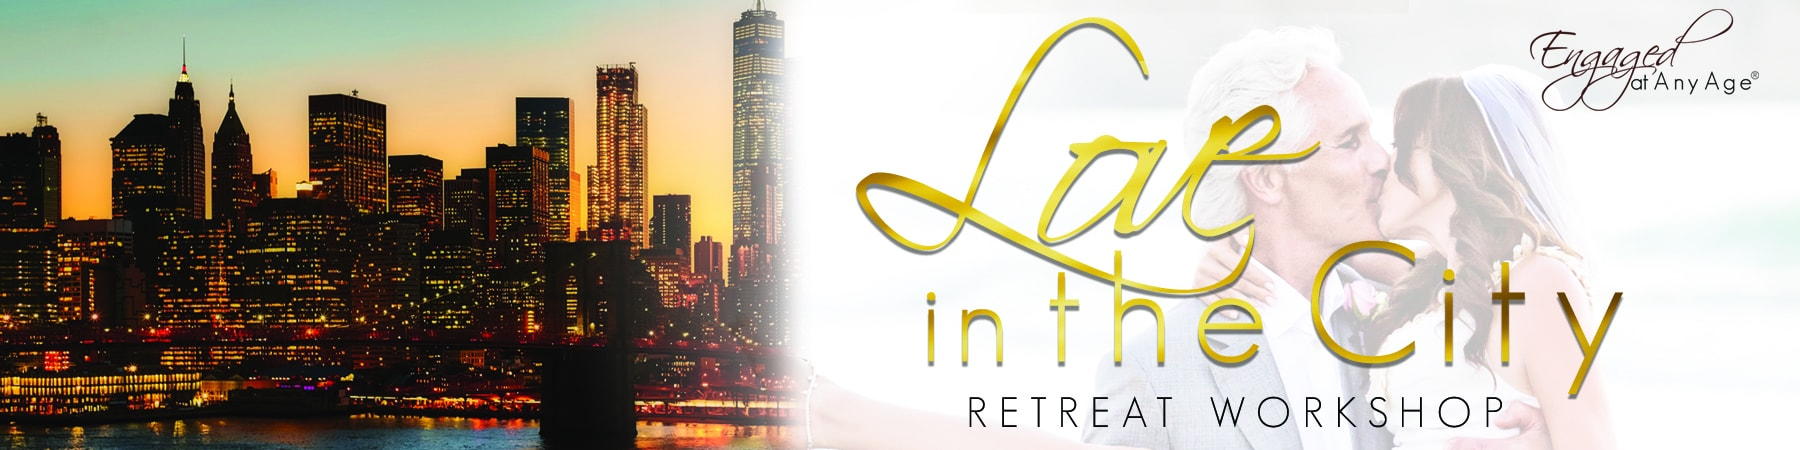 Love in the City Retreat Workshop hosted by Jaki Sabourin and Engaged At Any Age